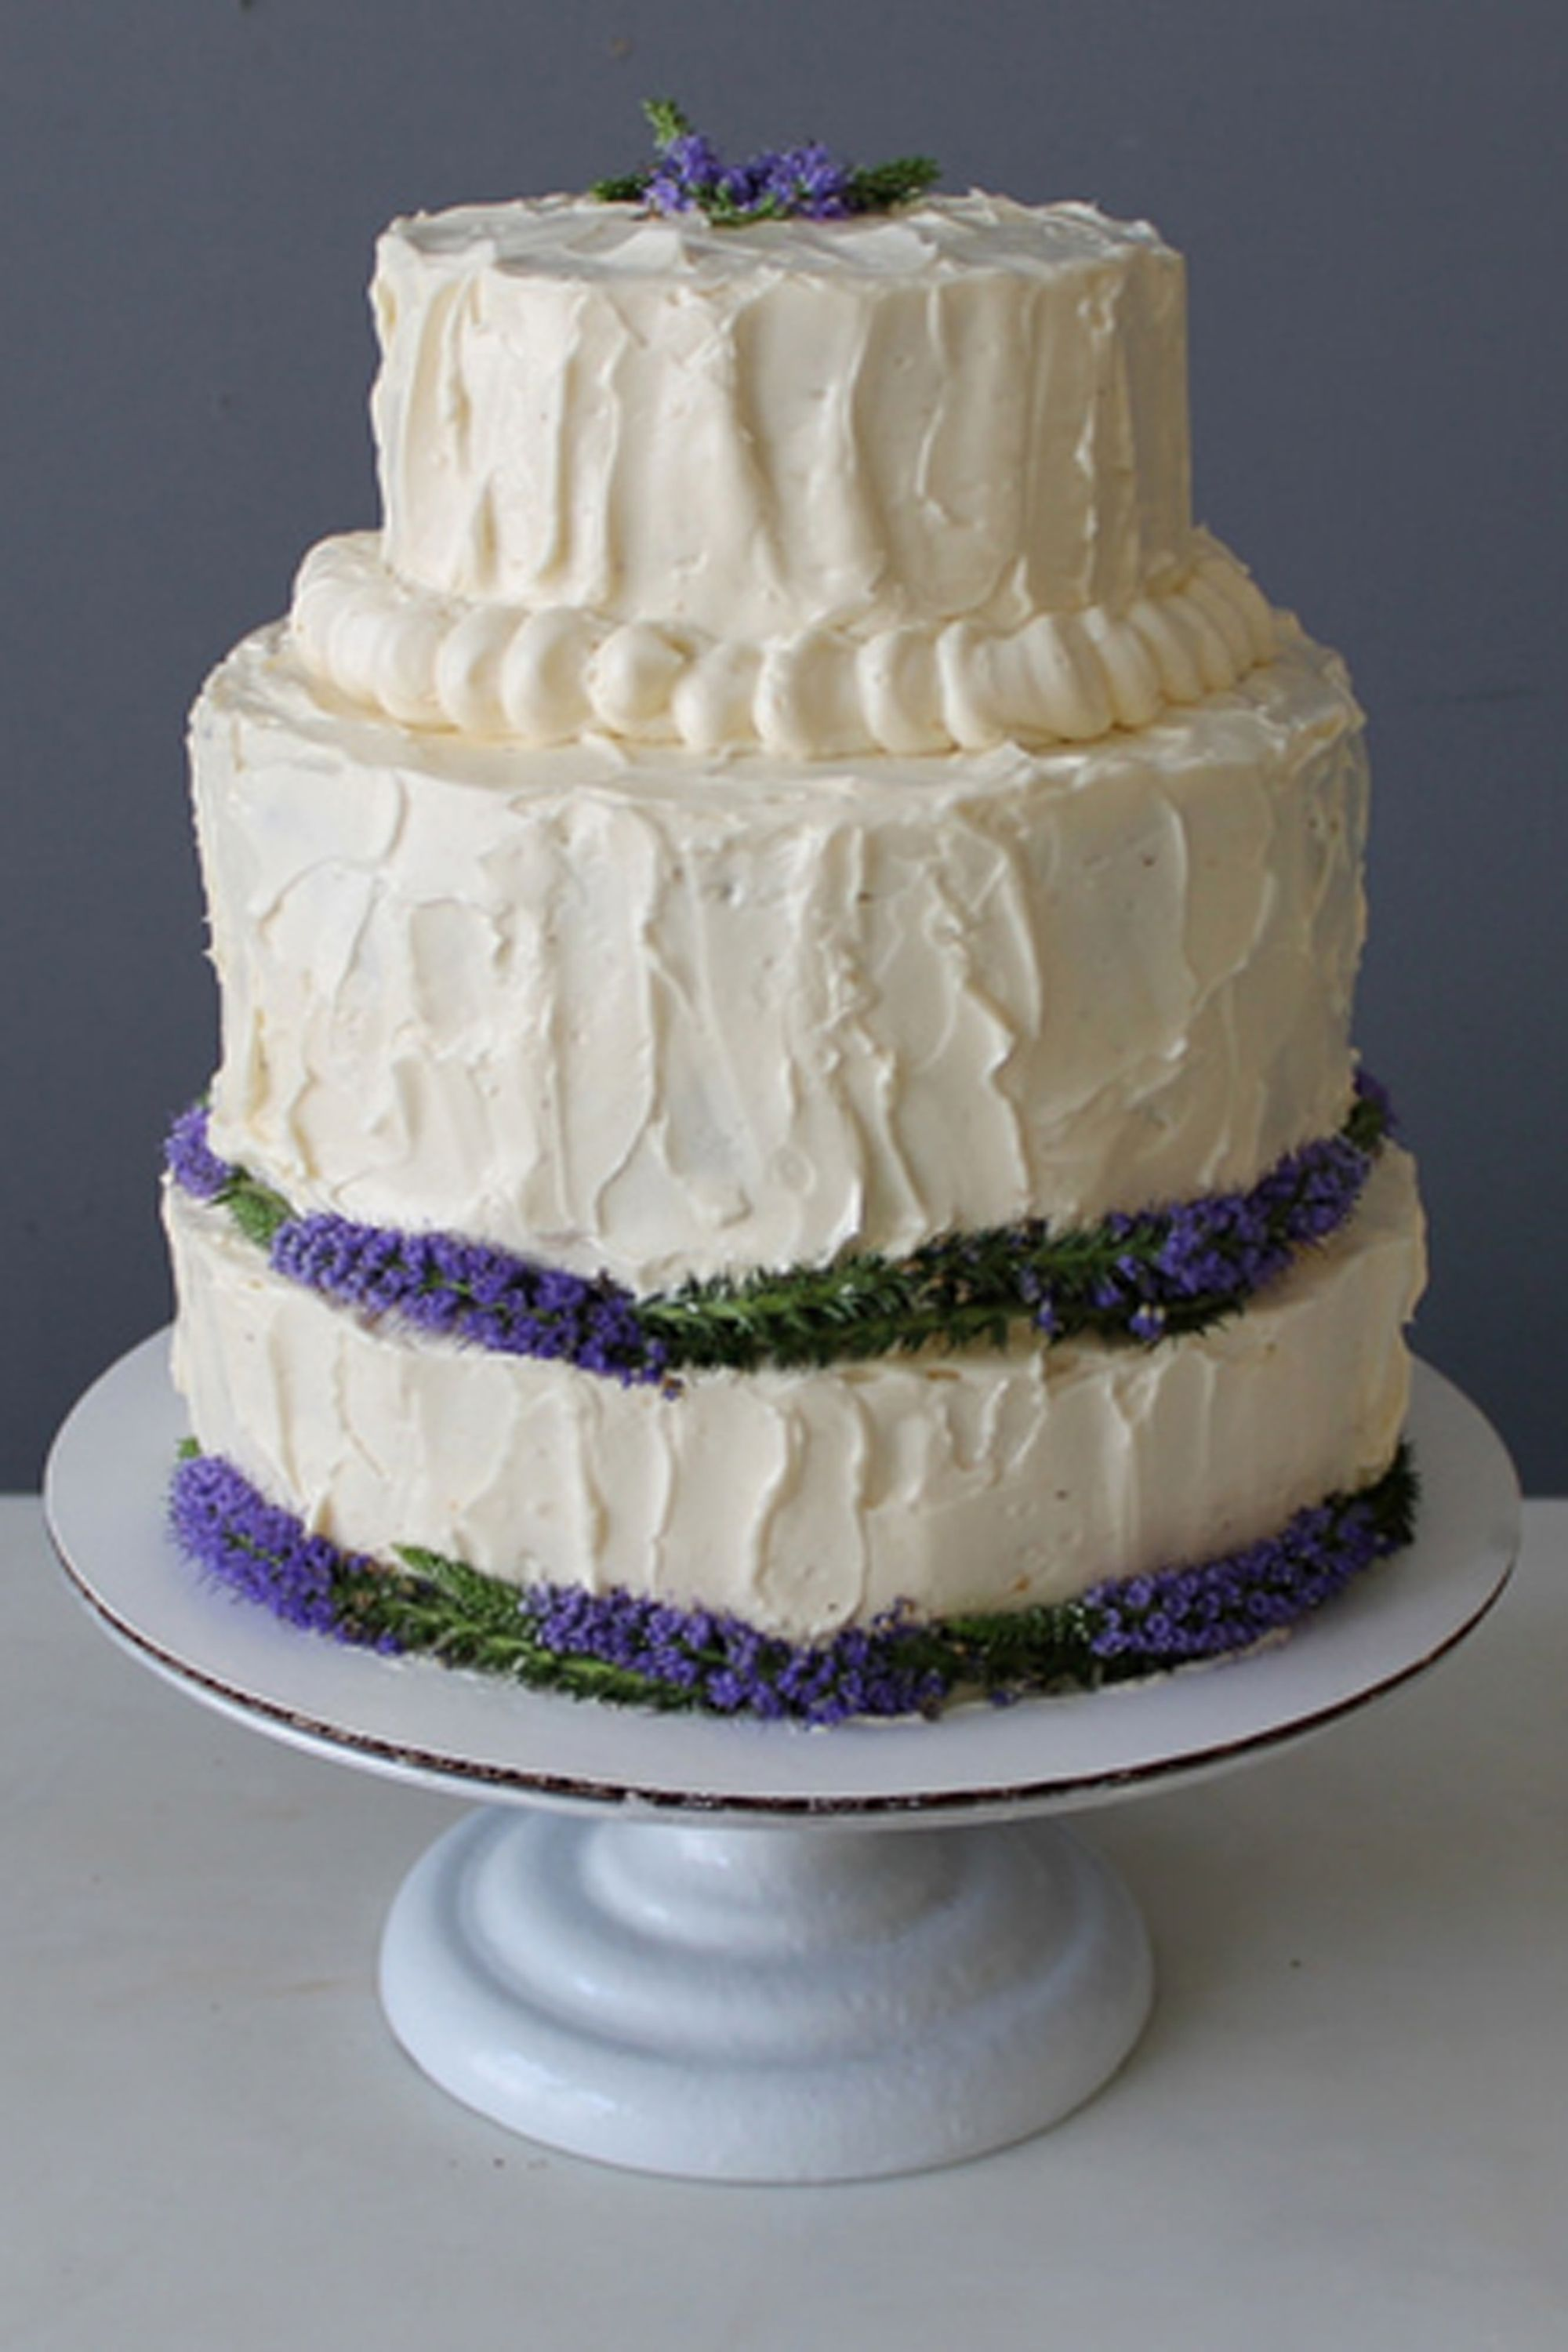 Homemade Wedding Cake.25 Best Homemade Wedding Cake Recipes From Scratch How To Make A